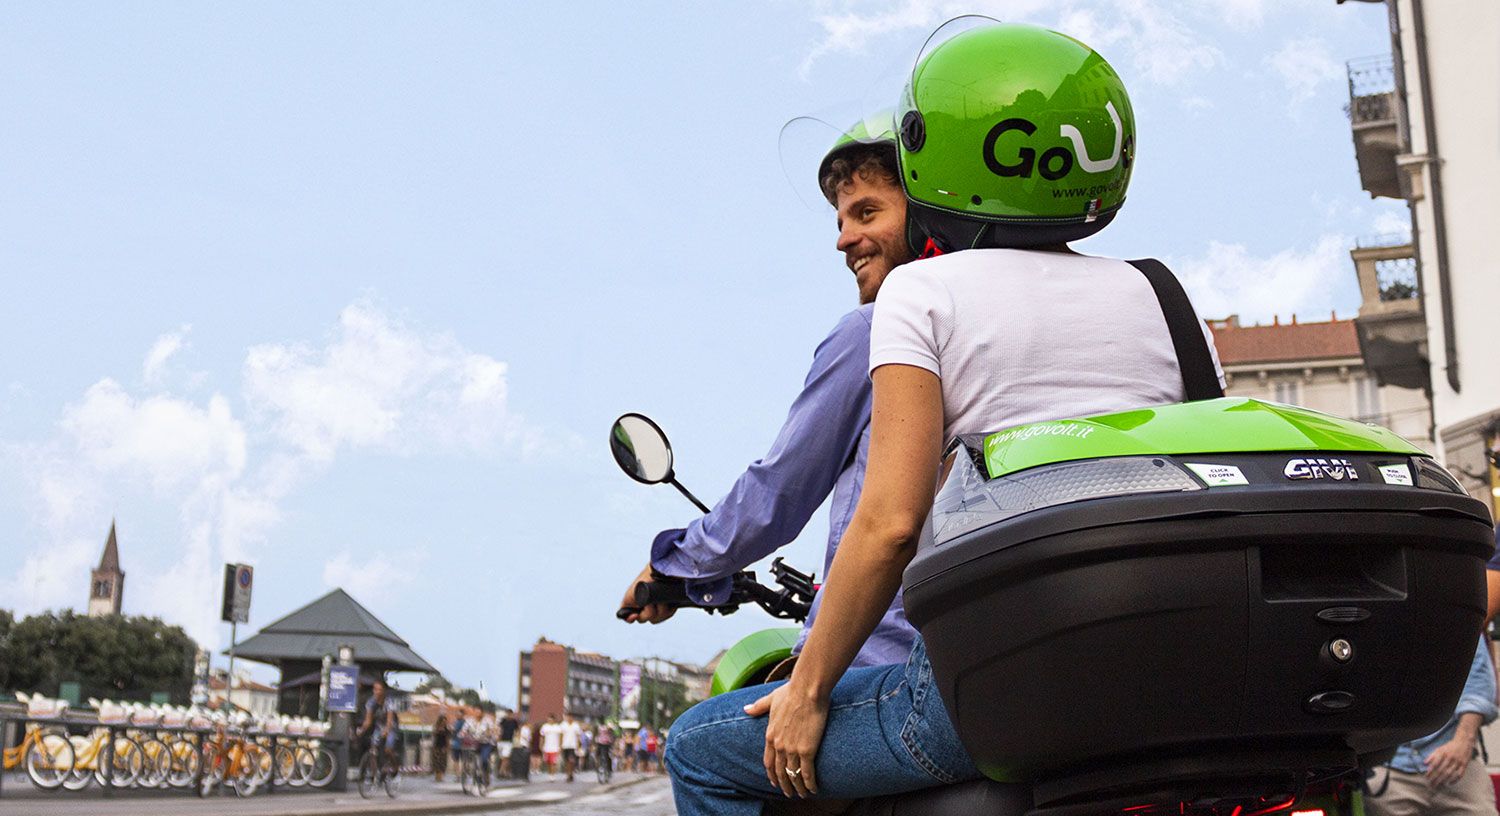 GoVolt | Your electric sharing on two wheels